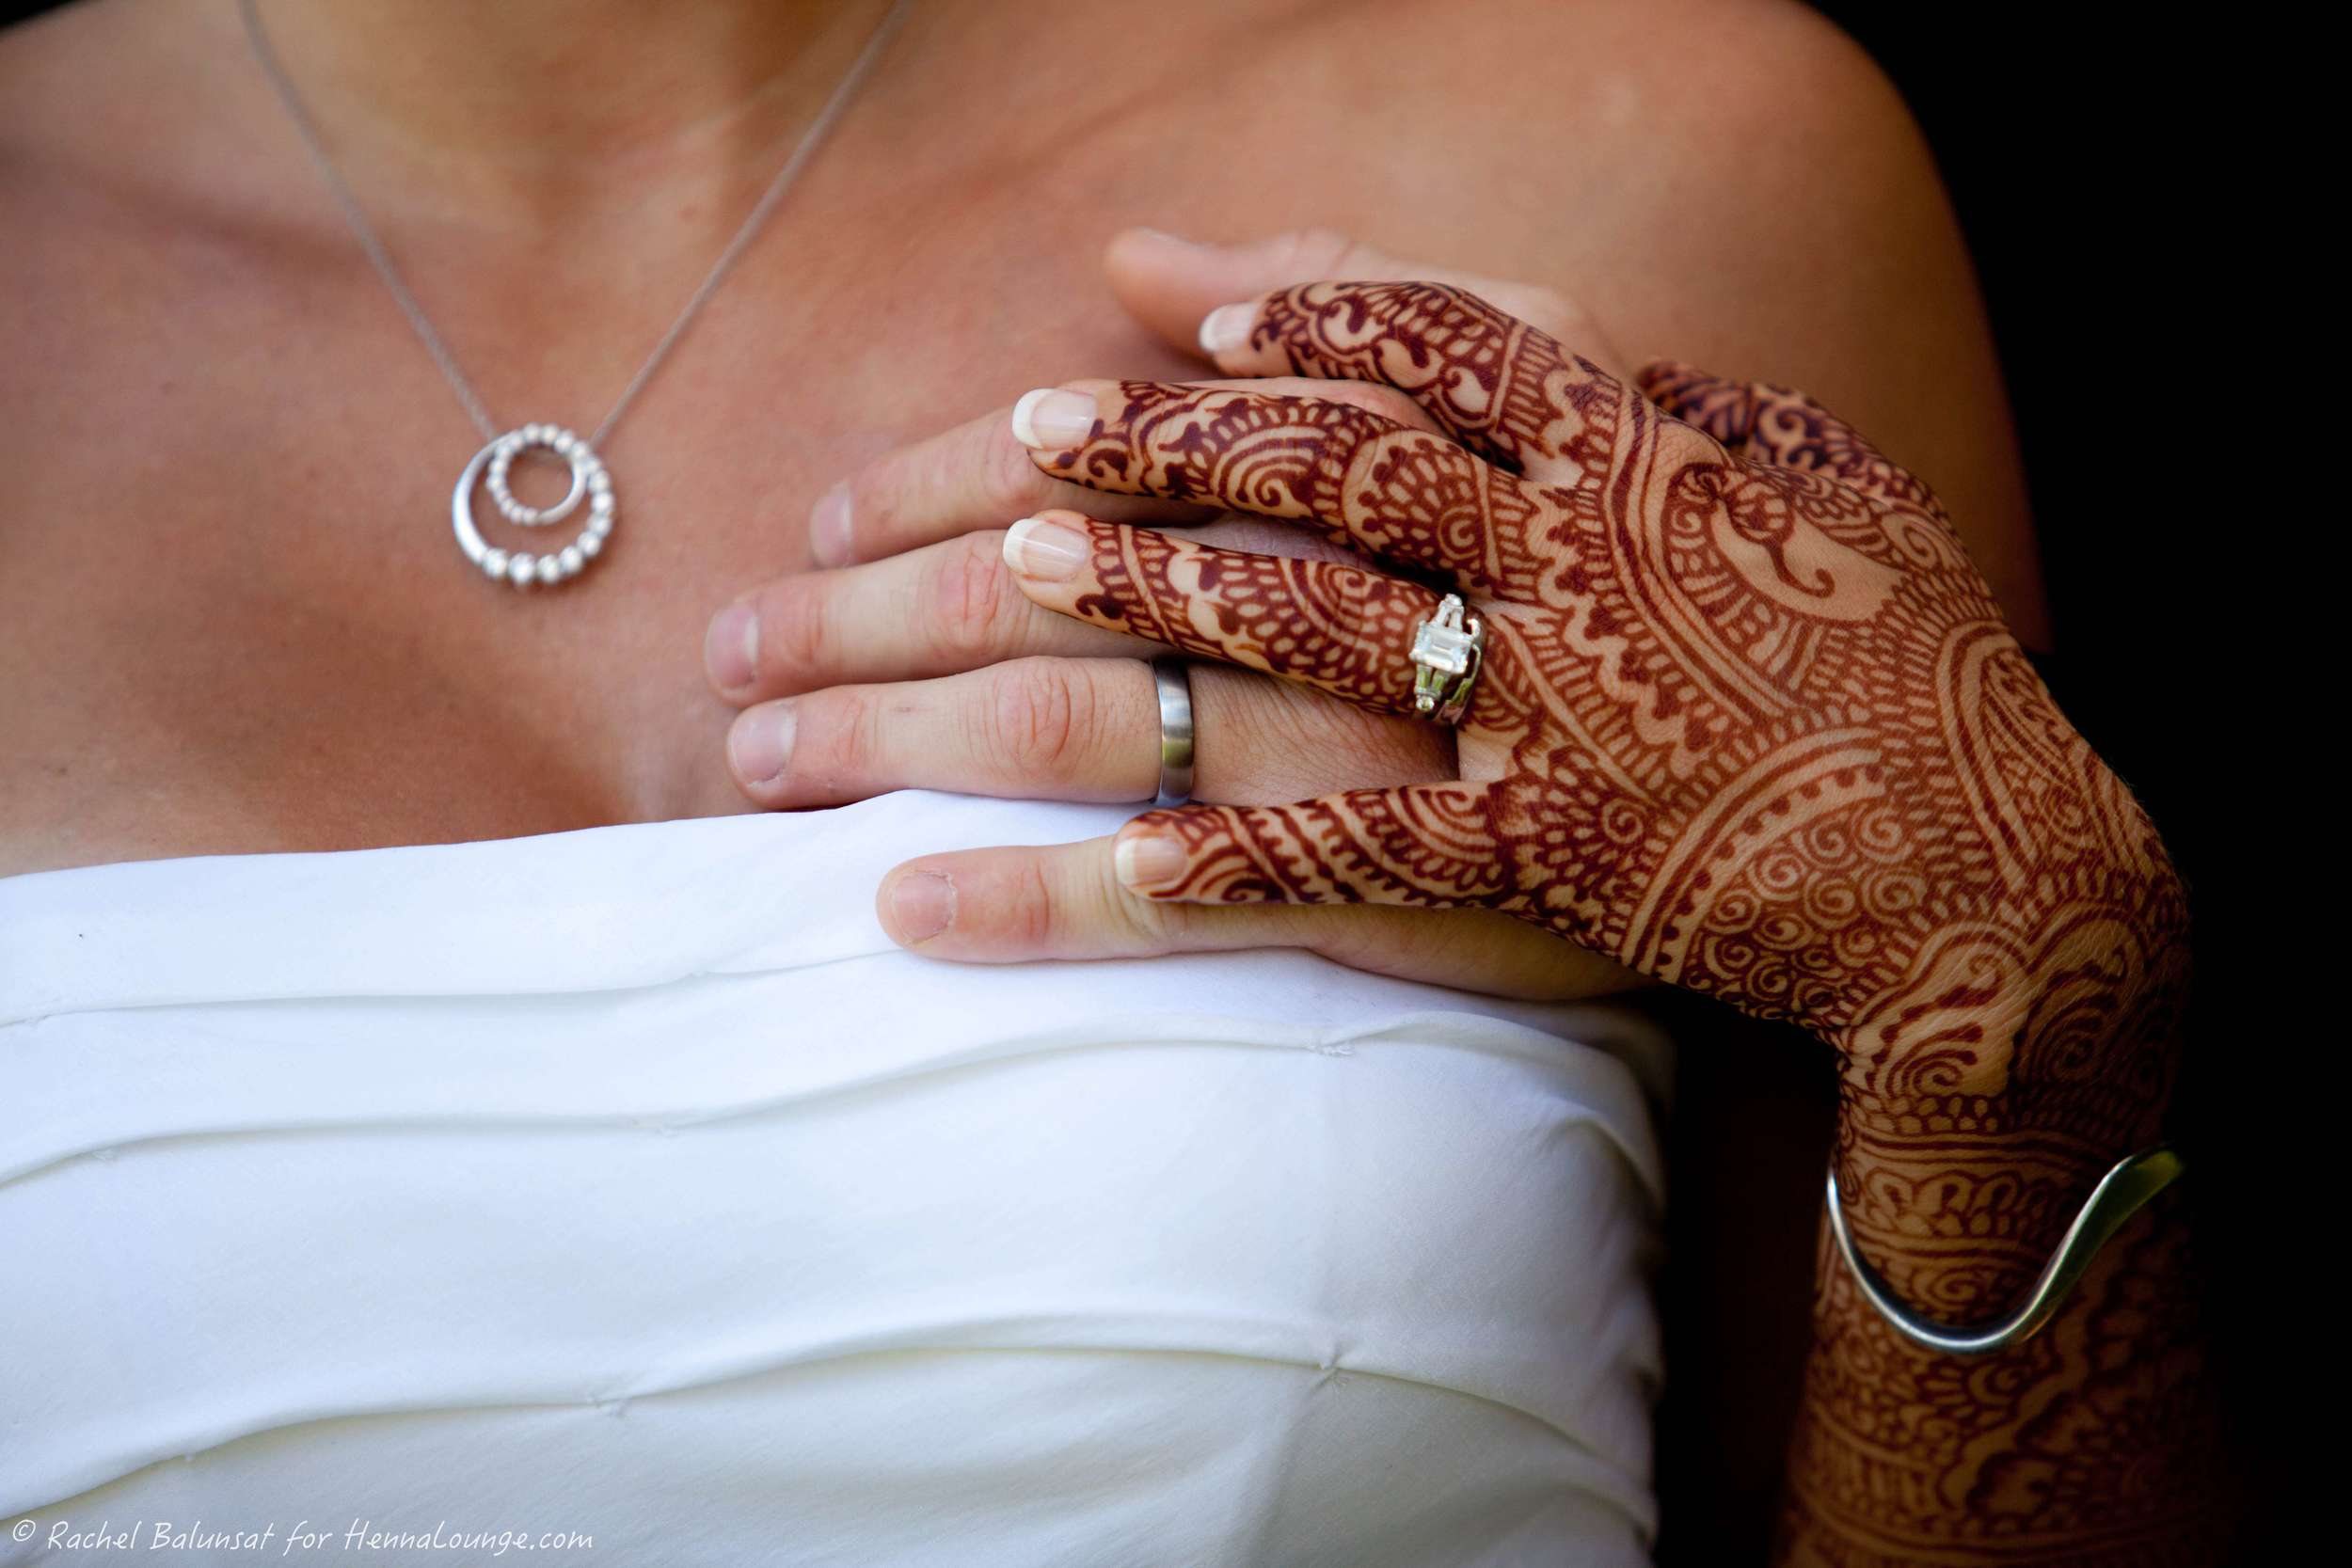 The rich color of her mehndi is a great backdrop for the sparkler on her finger. Photo by Rachel Balunsat and henna by http://www.hennalounge.com